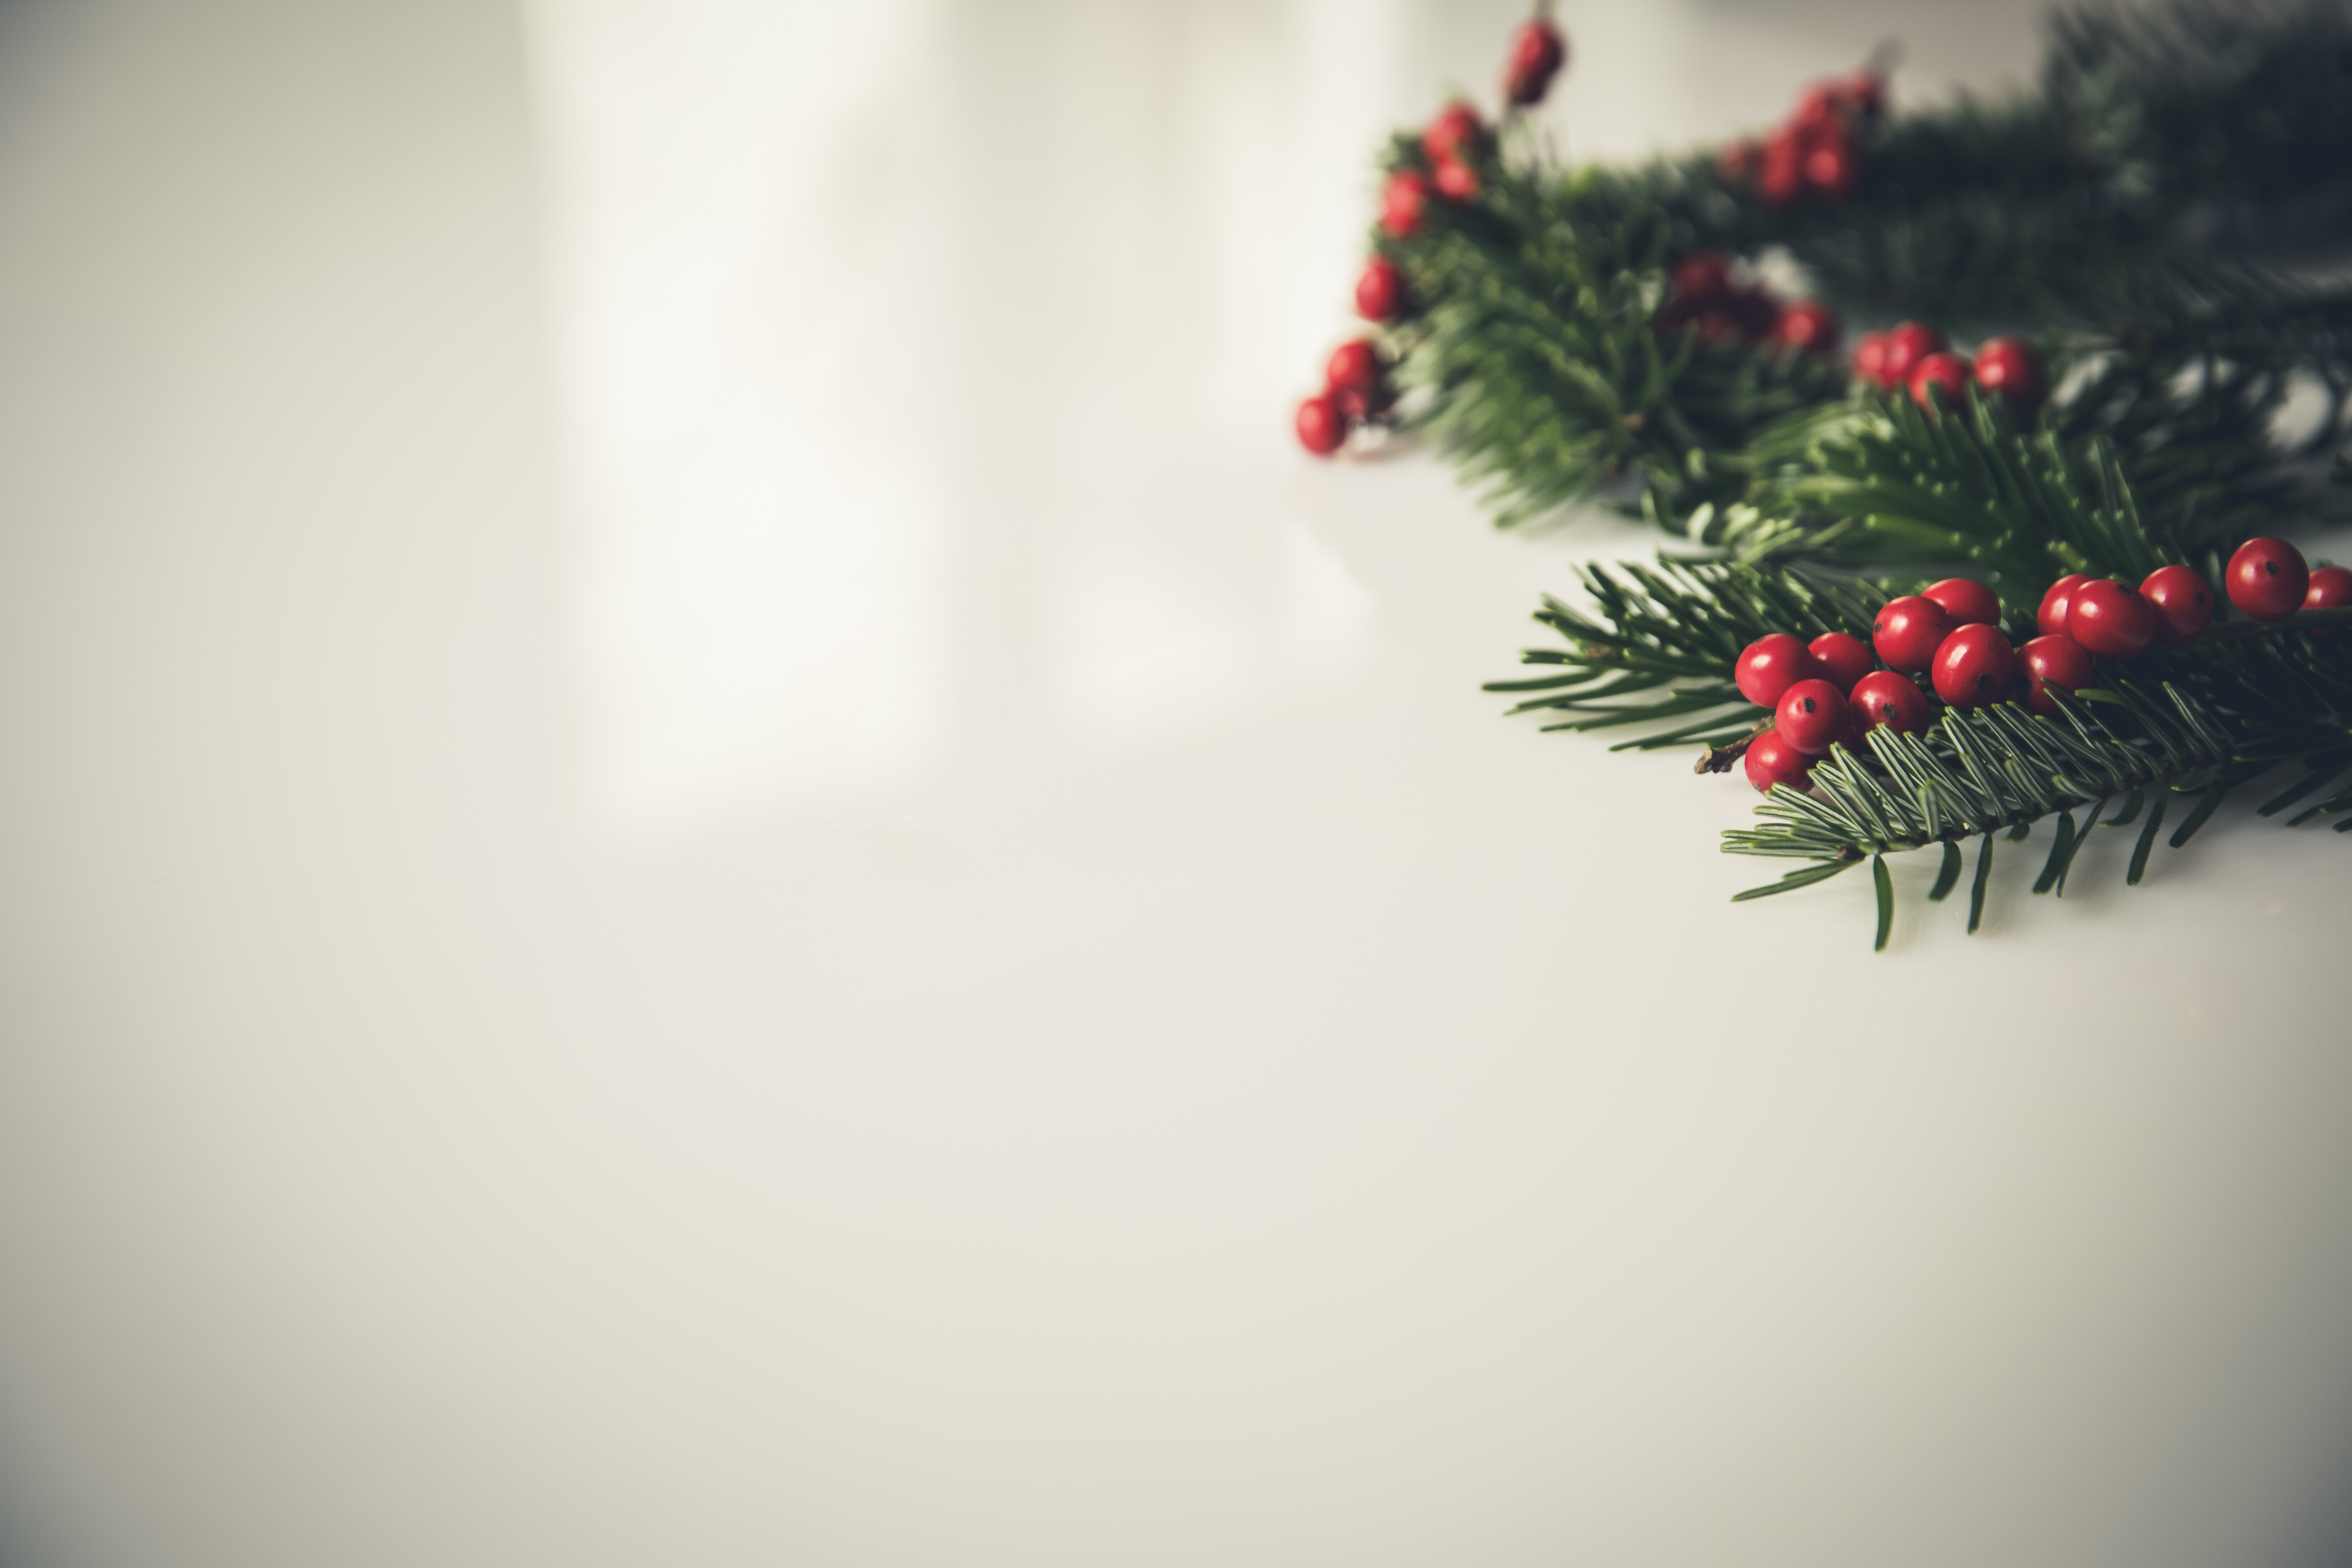 Christmas images · Pexels · Free Stock s